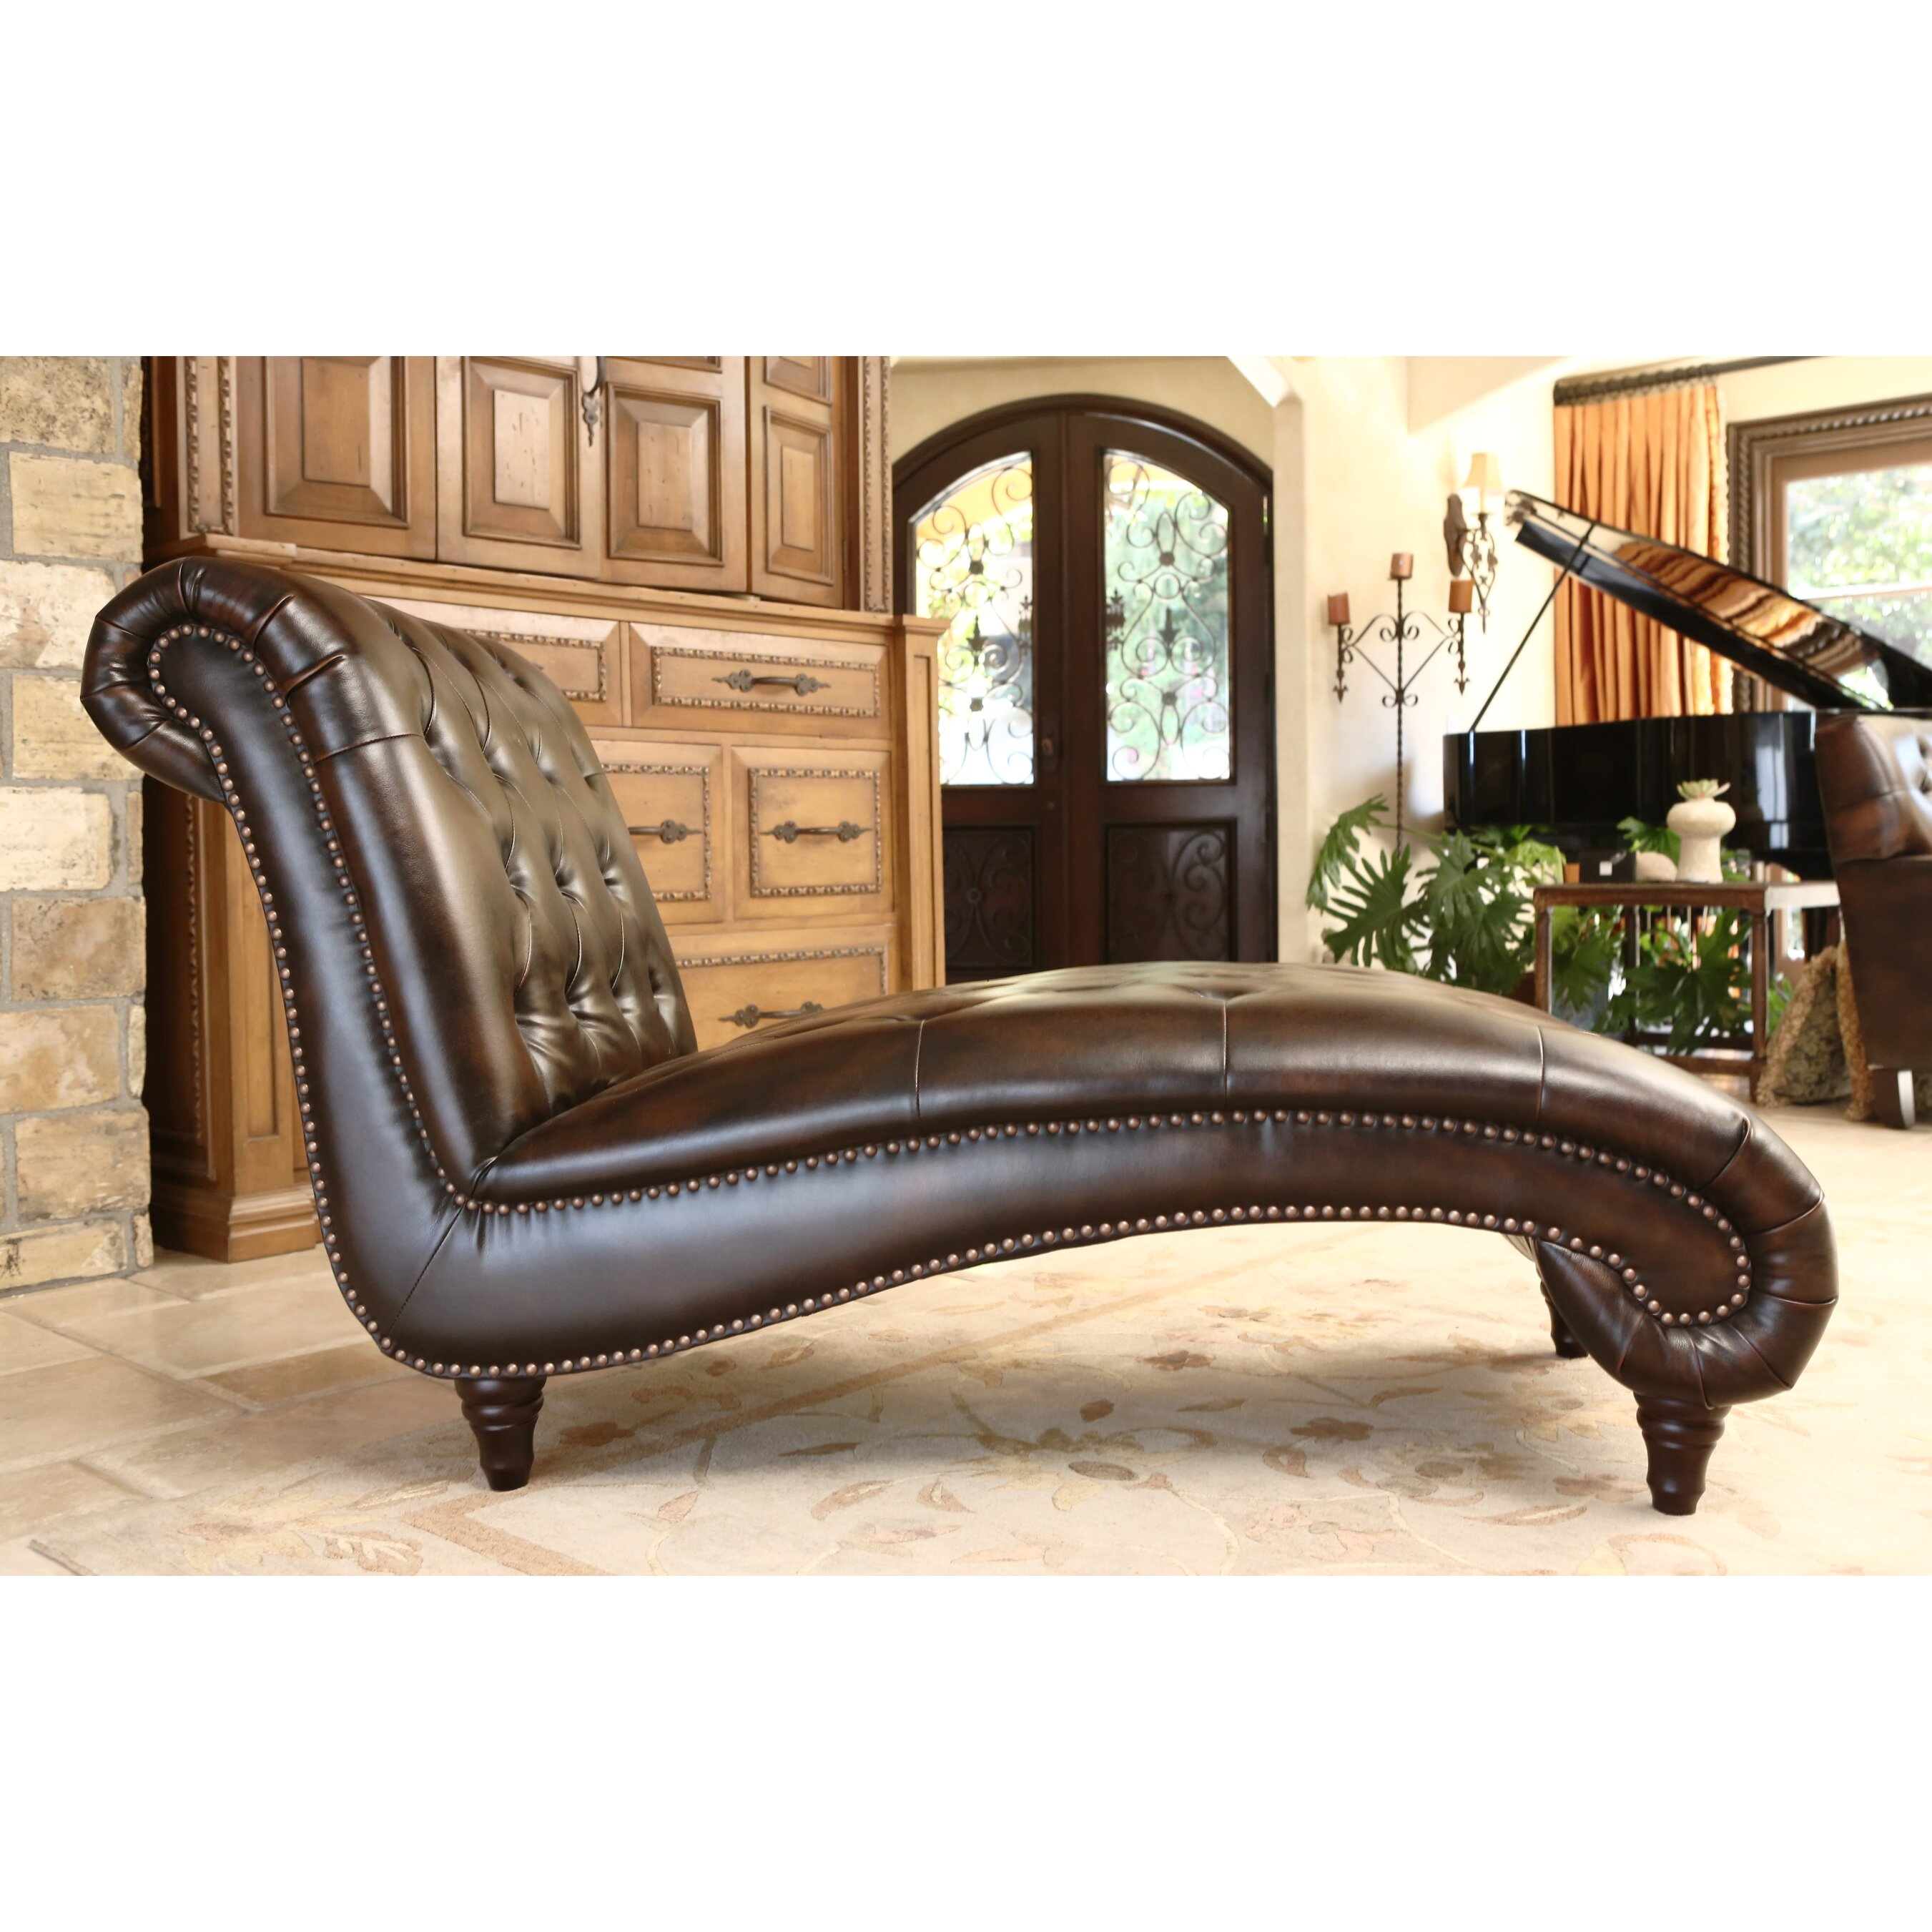 Abbyson living mirabello chaise lounge reviews wayfair for Abbyson living sedona leather chaise recliner